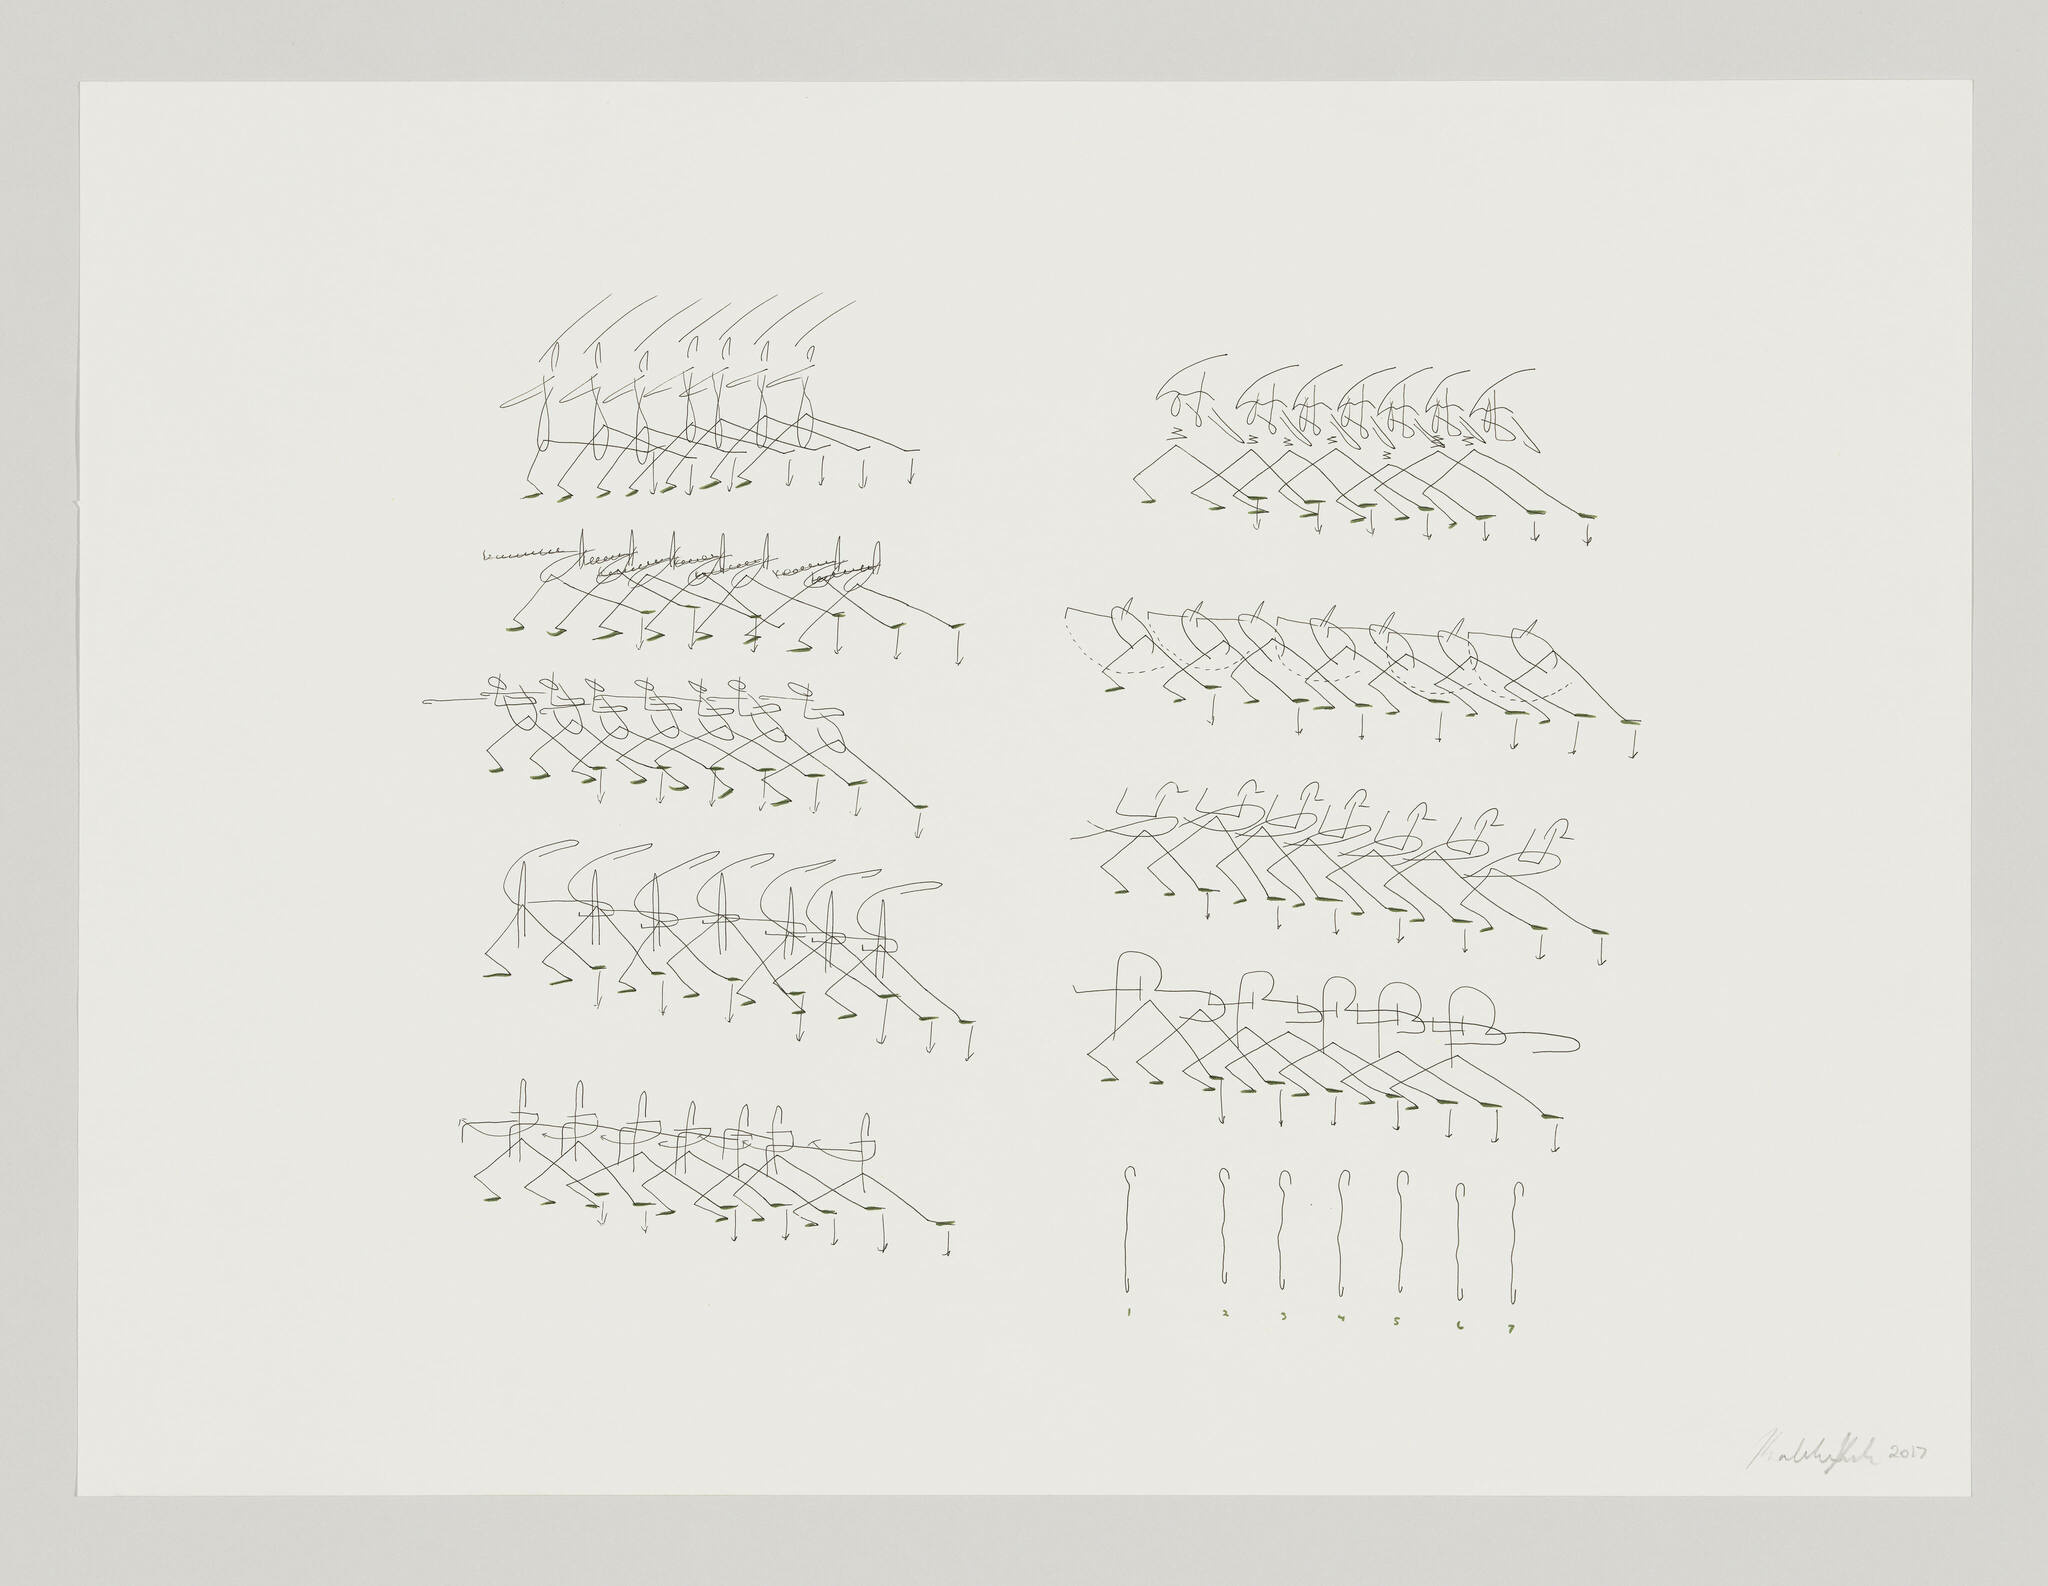 A drawing of nine crews of stick figures dancing and one group of lines atop of dots, evenly arranged in five rows against a white background